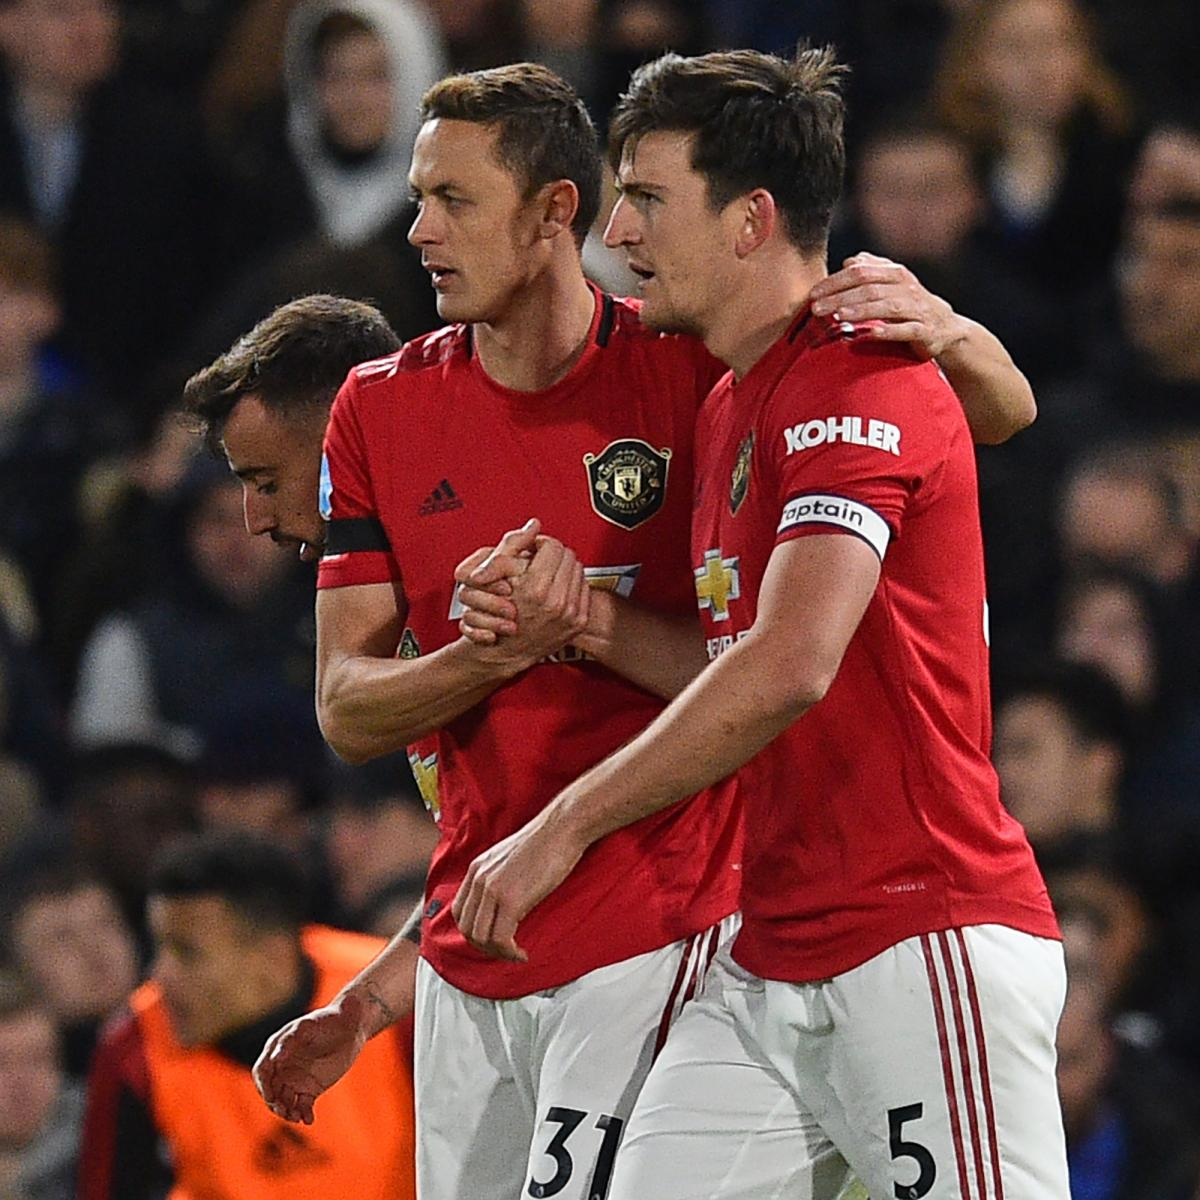 Manchester United Beat Chelsea to Edge Closer in Premier League Top-4 Chase